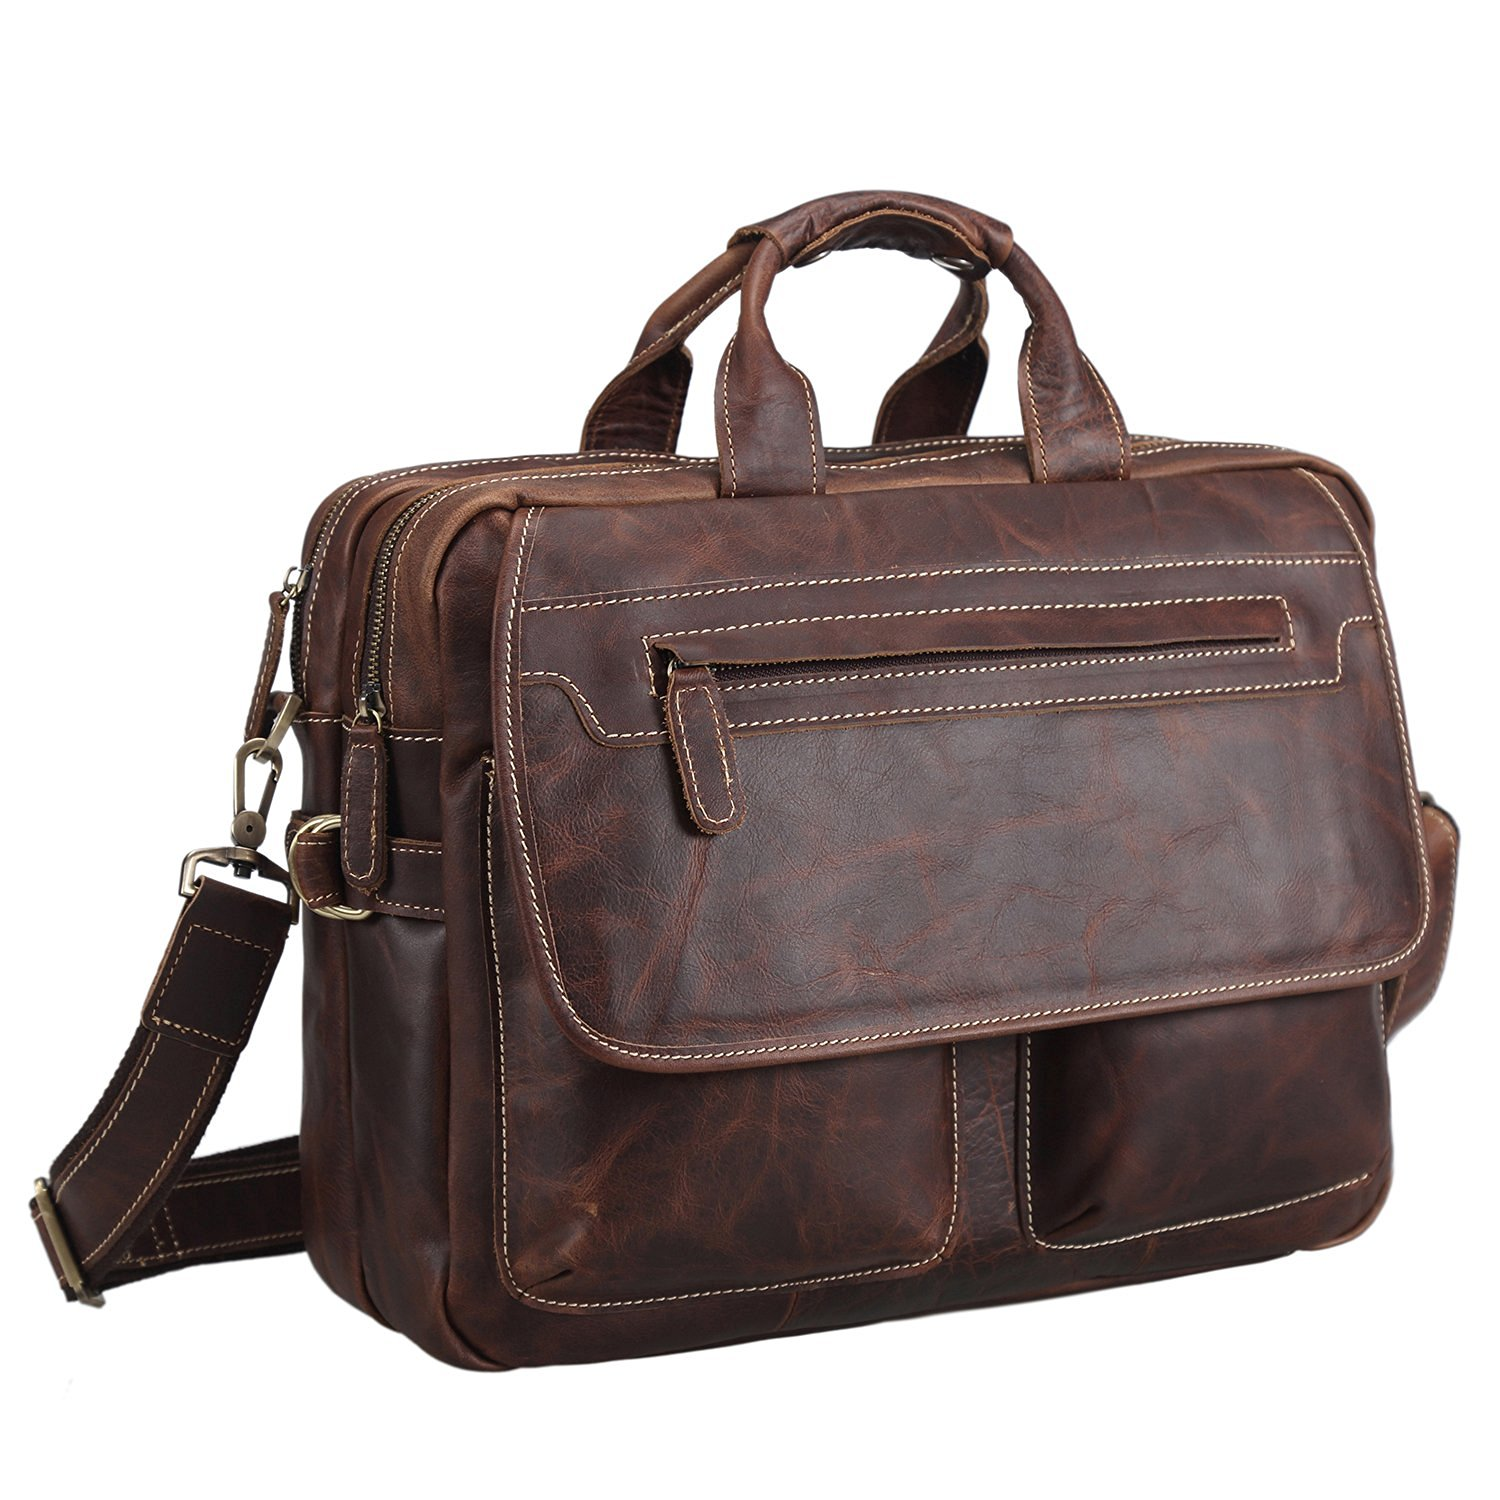 Soft Leather Laptop Bags- Fenix Toulouse Handball 3963114ee6a0a